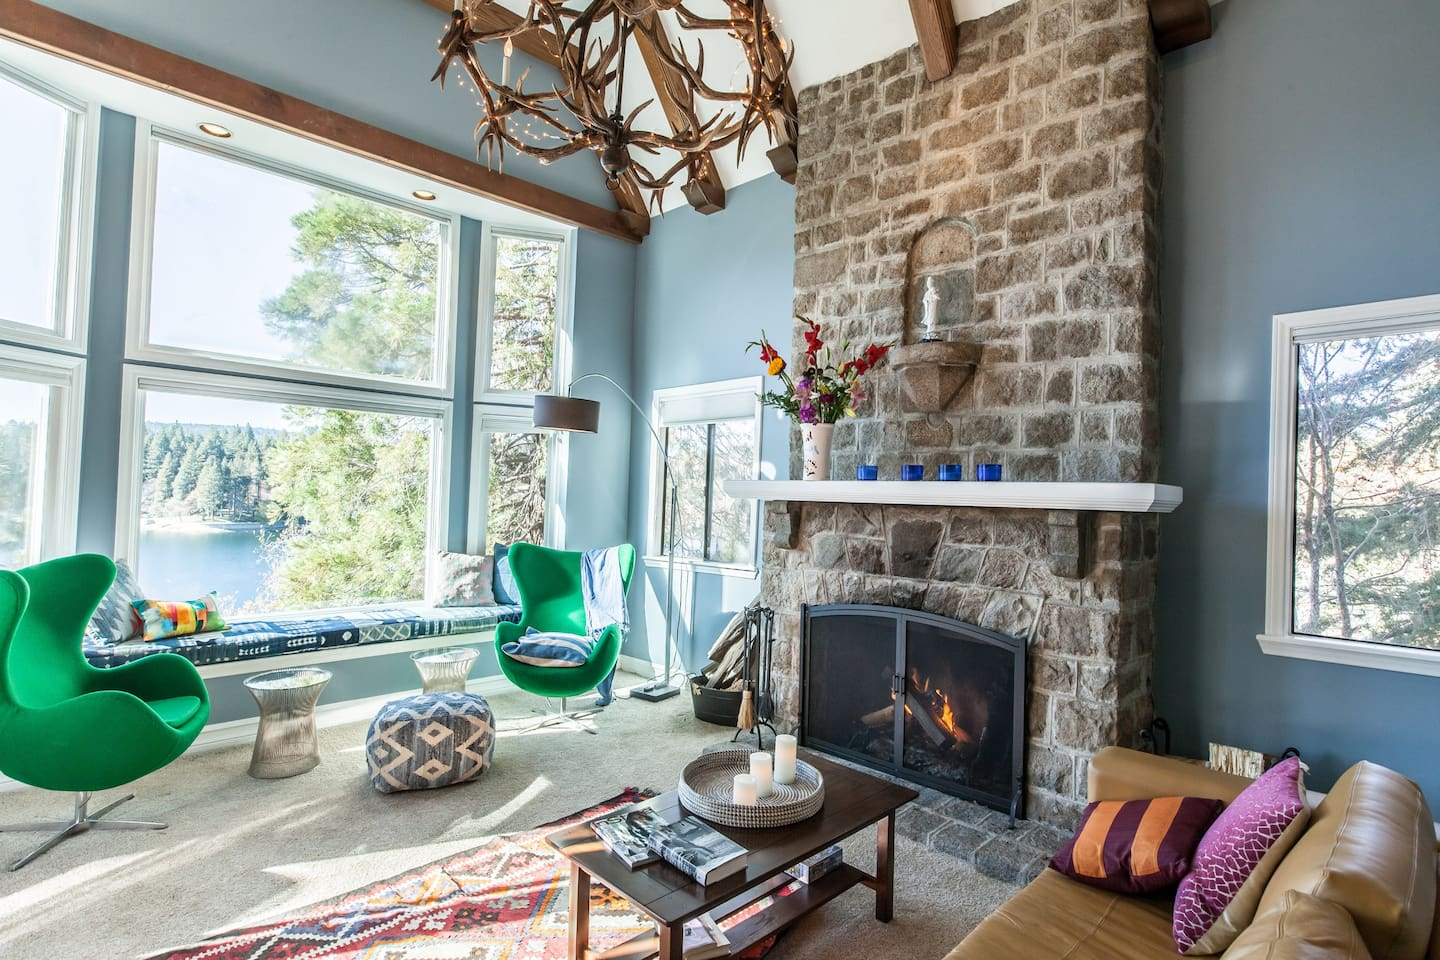 Living room with fireplace surrounded by natural stone